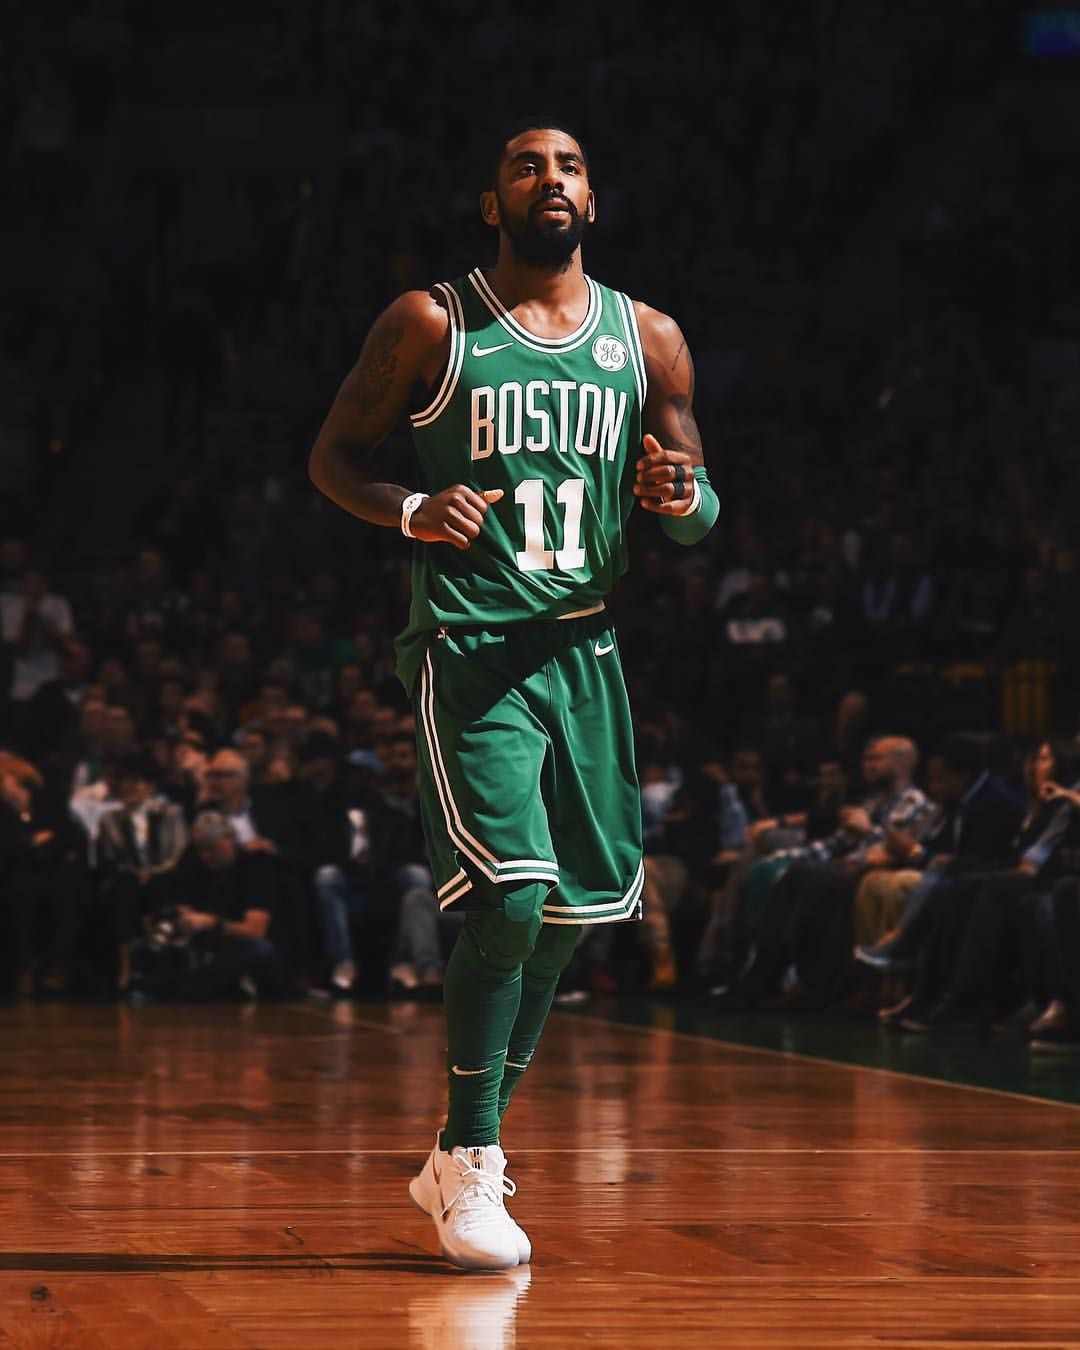 Kyrie Irving Wallpaper: Pin By Christian Arriaga On NBA